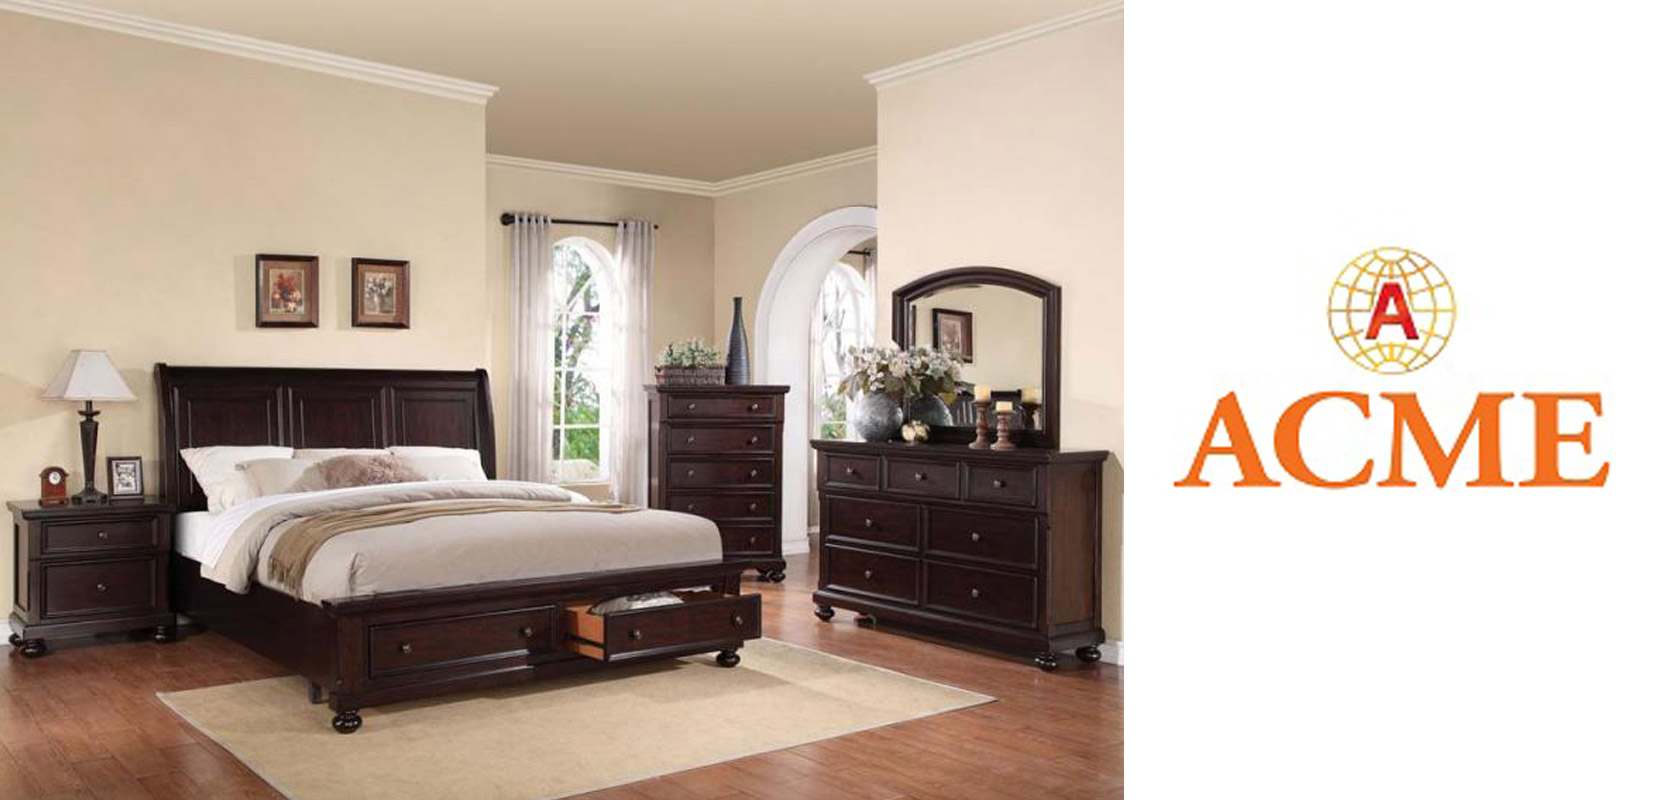 Merveilleux Acme Furniture Is One Of The Largest Furniture Distributors In The Nation  With 6 Branches Across The United States. Their Locations Include Woodside,  ...